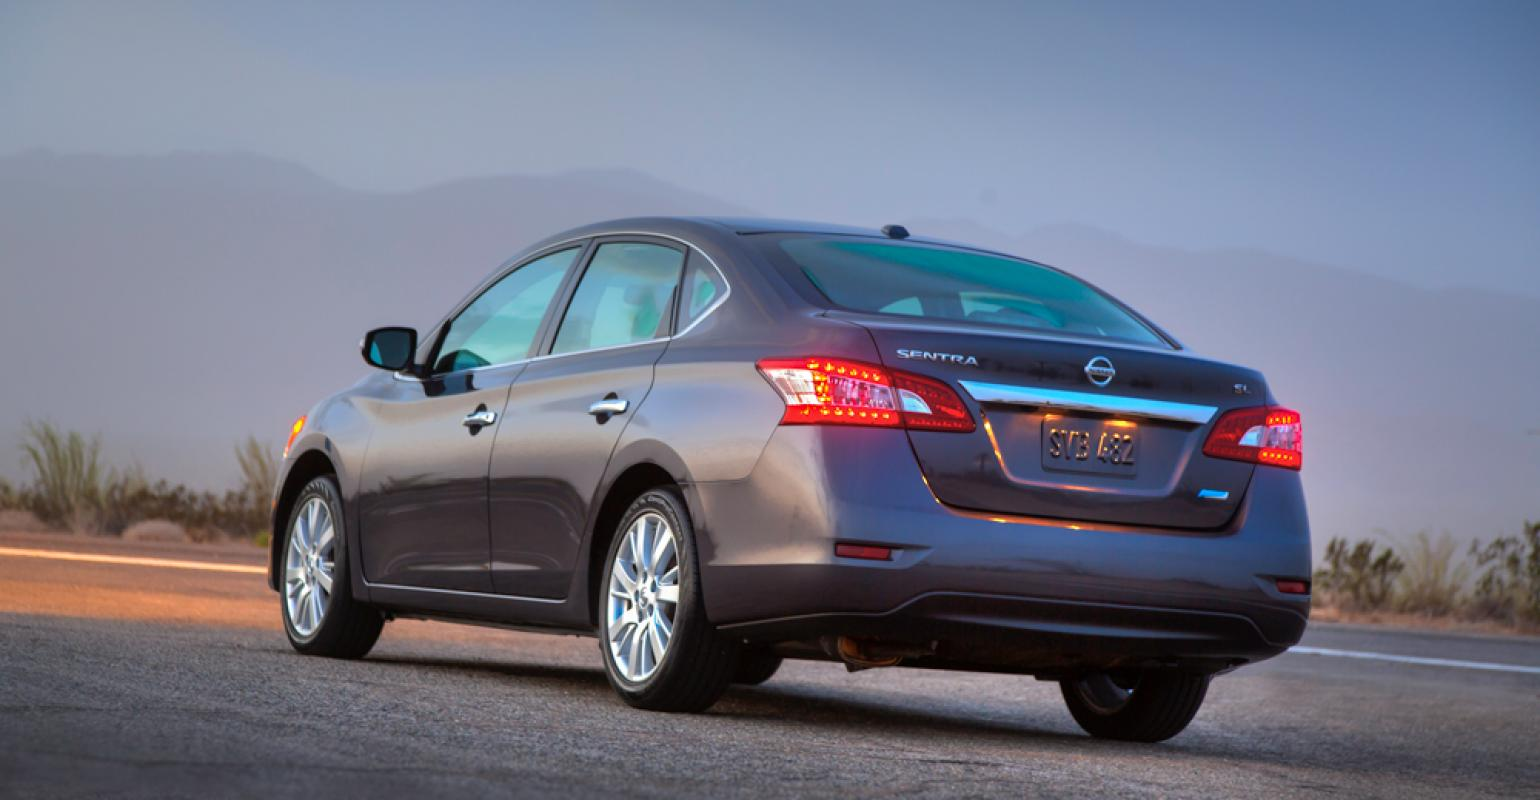 Nissan Sentra Moves Uptown; No Low Cost Leaf Leases Ahead